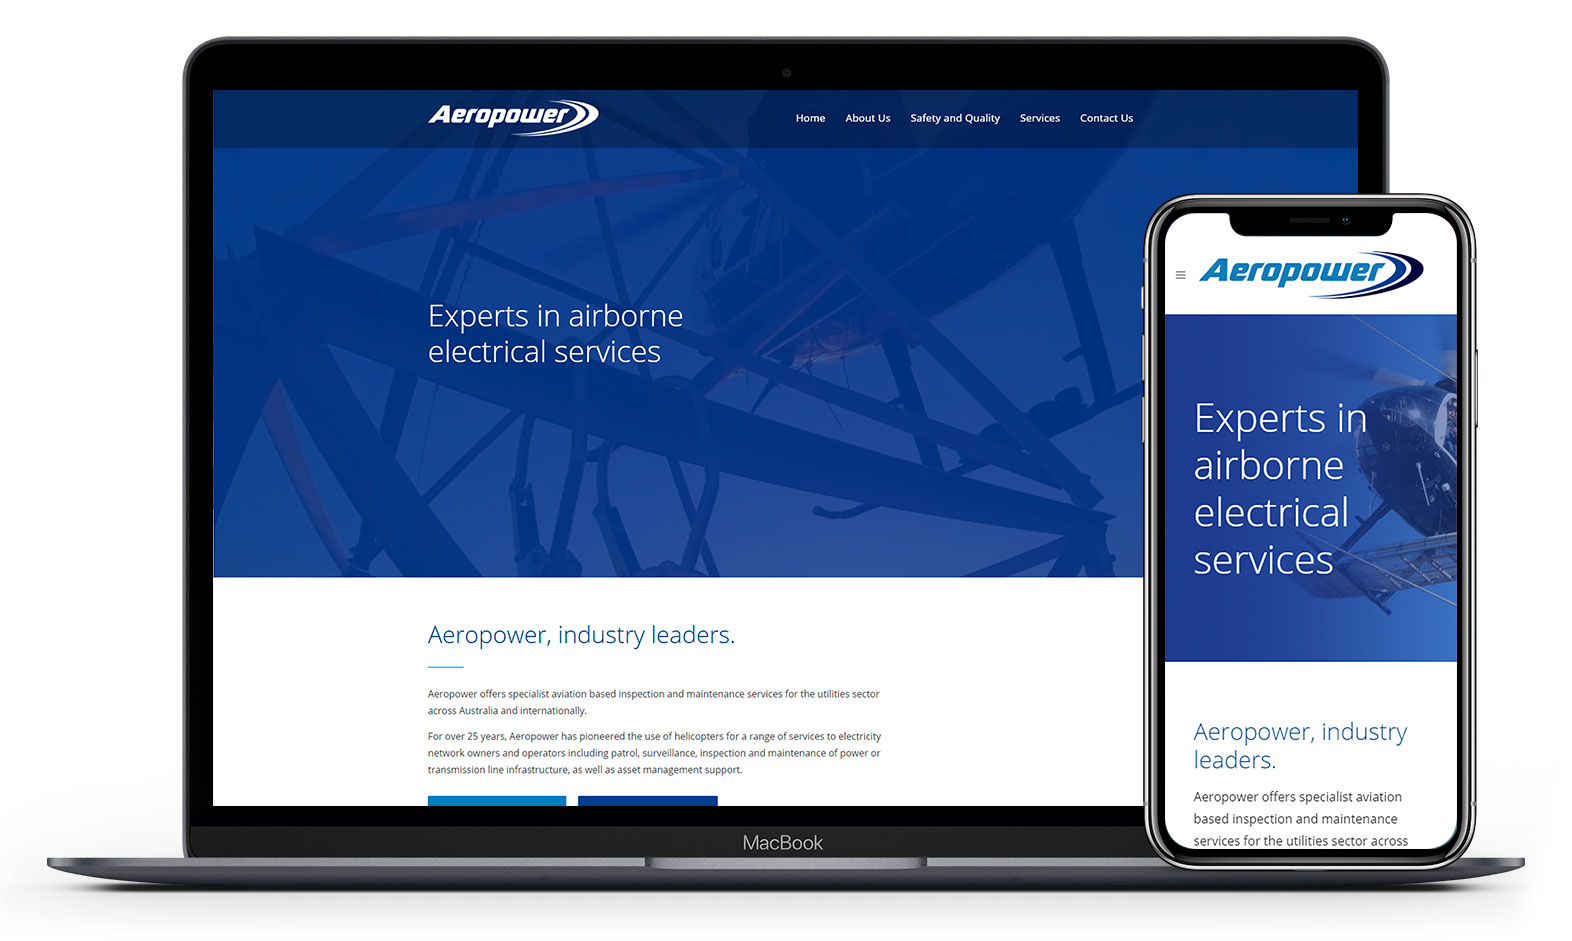 Aeropower's website design displayed responsive devices